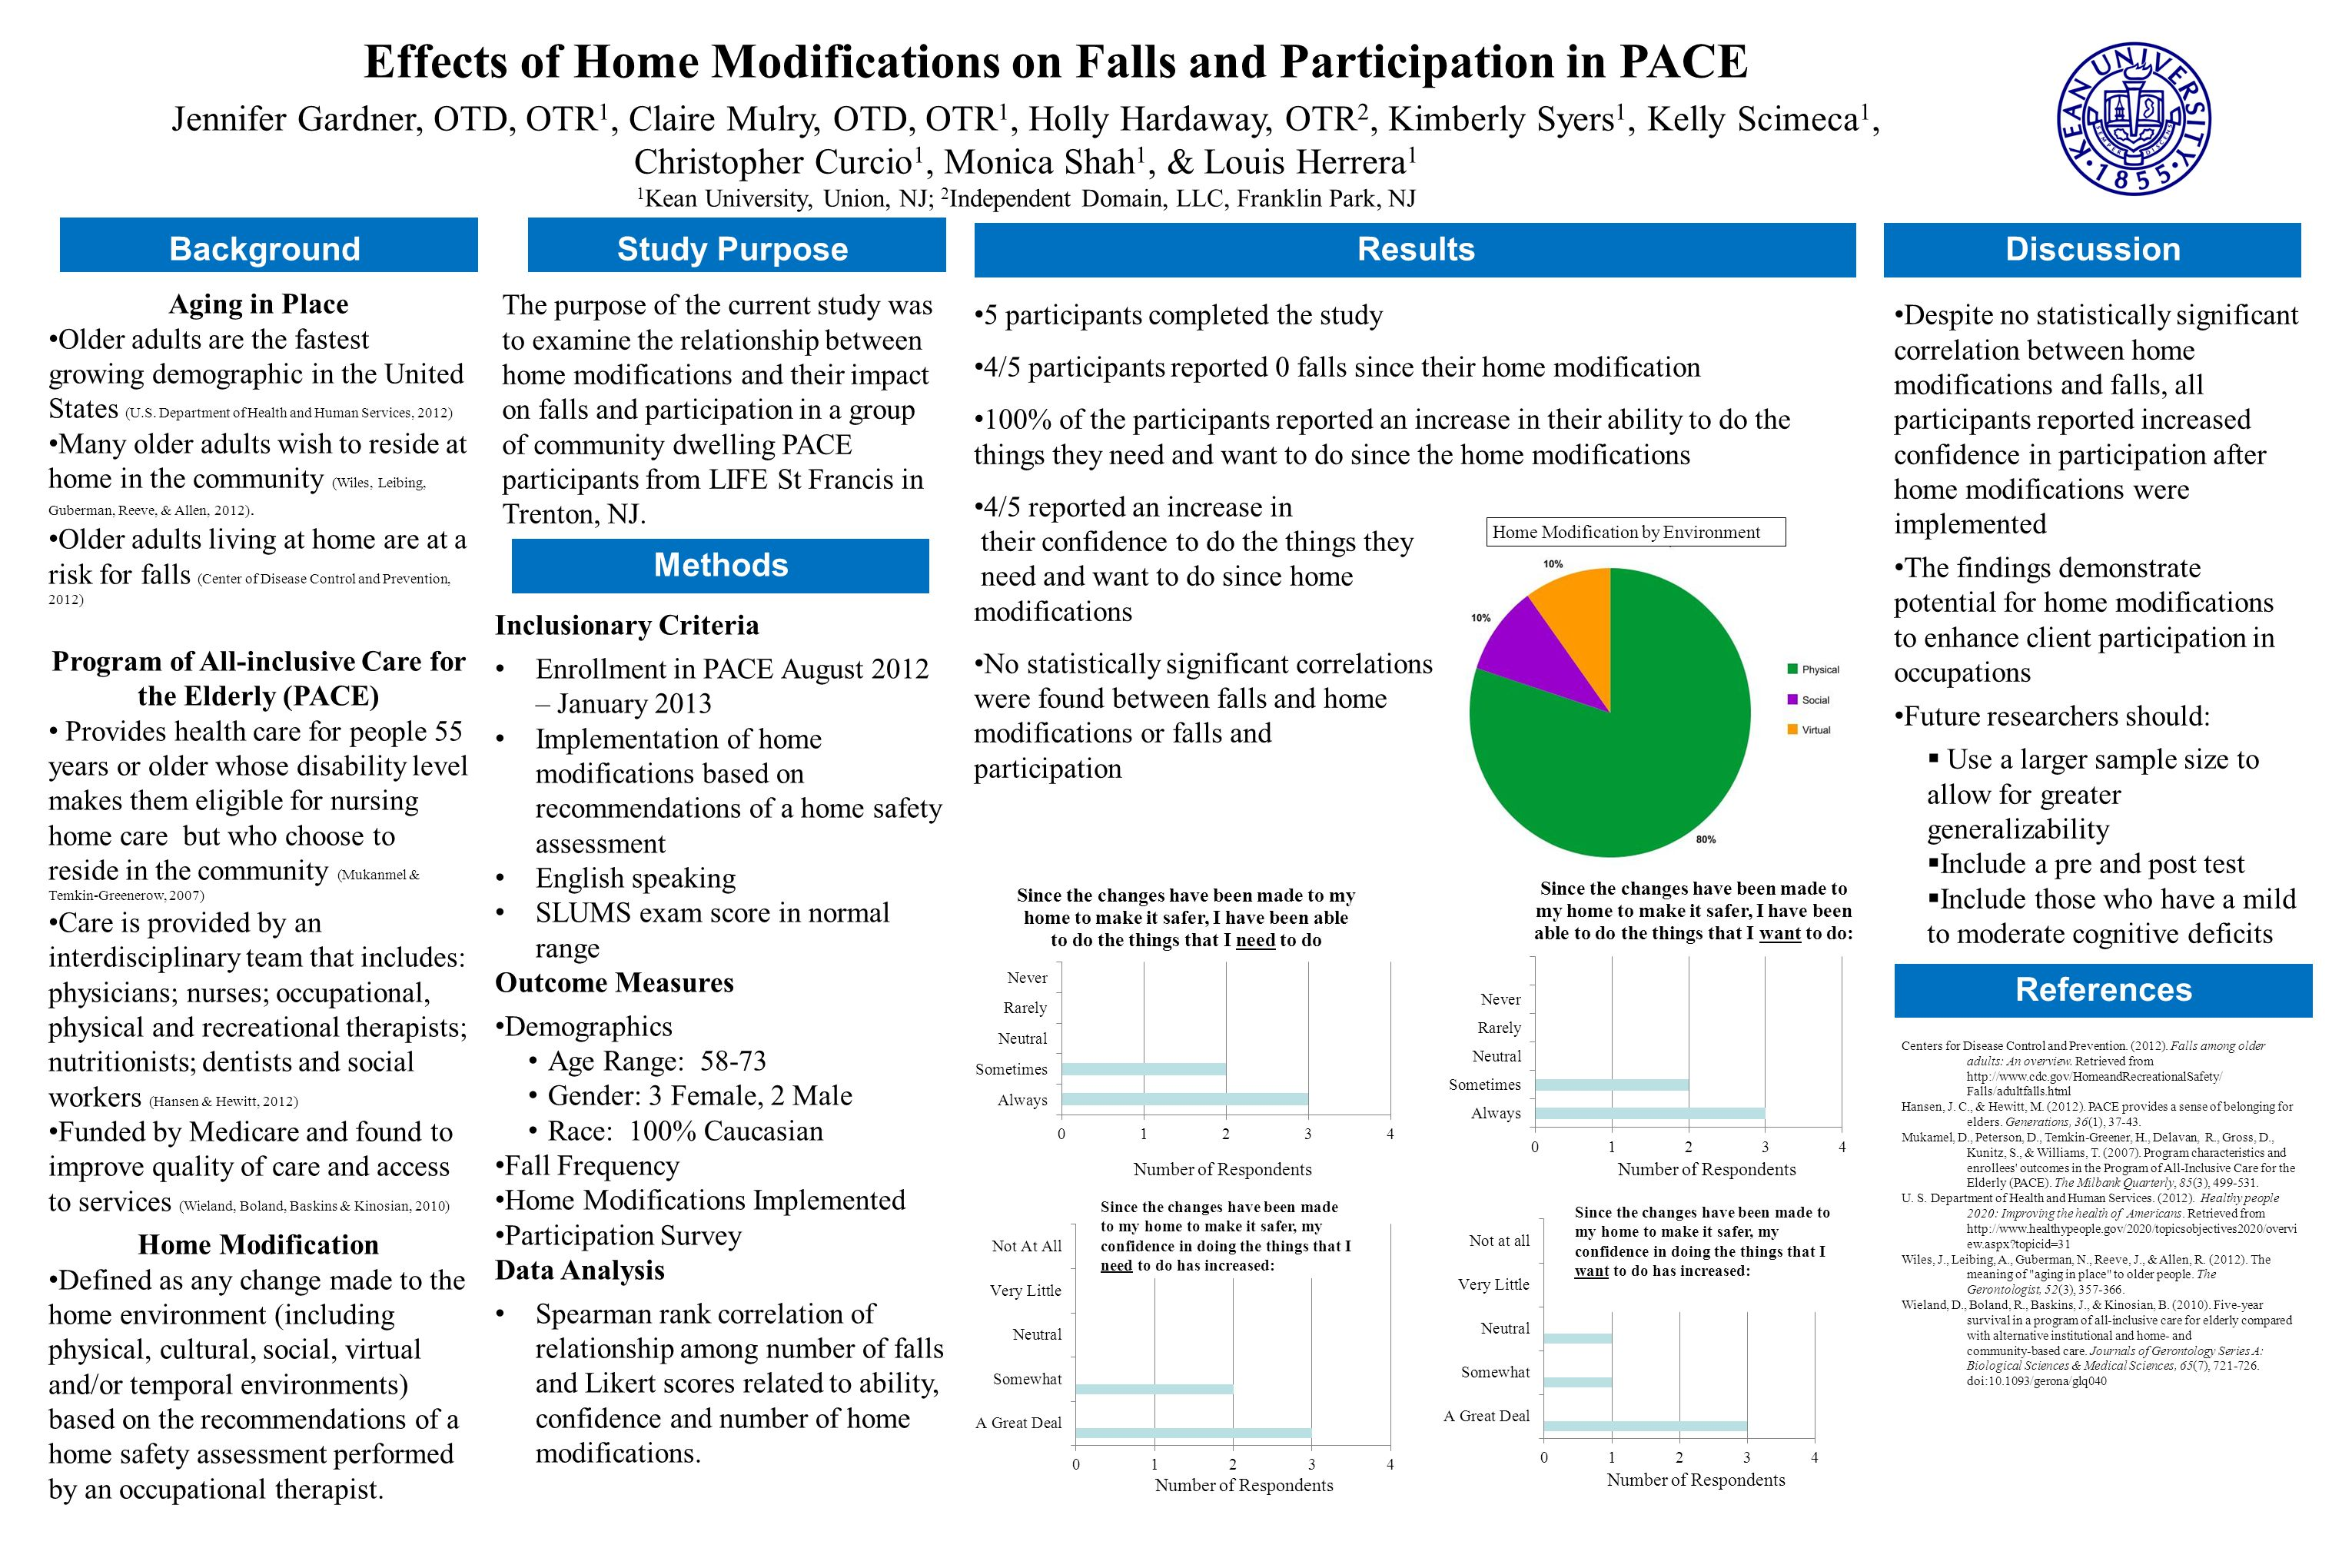 Effects of Home Modifications on Falls and Participation in PACE Jennifer Gardner, OTD, OTR 1, Claire Mulry, OTD, OTR 1, Holly Hardaway, OTR 2, Kimberly Syers 1, Kelly Scimeca 1, Christopher Curcio 1, Monica Shah 1, & Louis Herrera 1 1 Kean University, Union, NJ; 2 Independent Domain, LLC, Franklin Park, NJ Inclusionary Criteria Enrollment in PACE August 2012 – January 2013 Implementation of home modifications based on recommendations of a home safety assessment English speaking SLUMS exam score in normal range Outcome Measures Demographics Age Range: 58-73 Gender: 3 Female, 2 Male Race: 100% Caucasian Fall Frequency Home Modifications Implemented Participation Survey Data Analysis Spearman rank correlation of relationship among number of falls and Likert scores related to ability, confidence and number of home modifications.